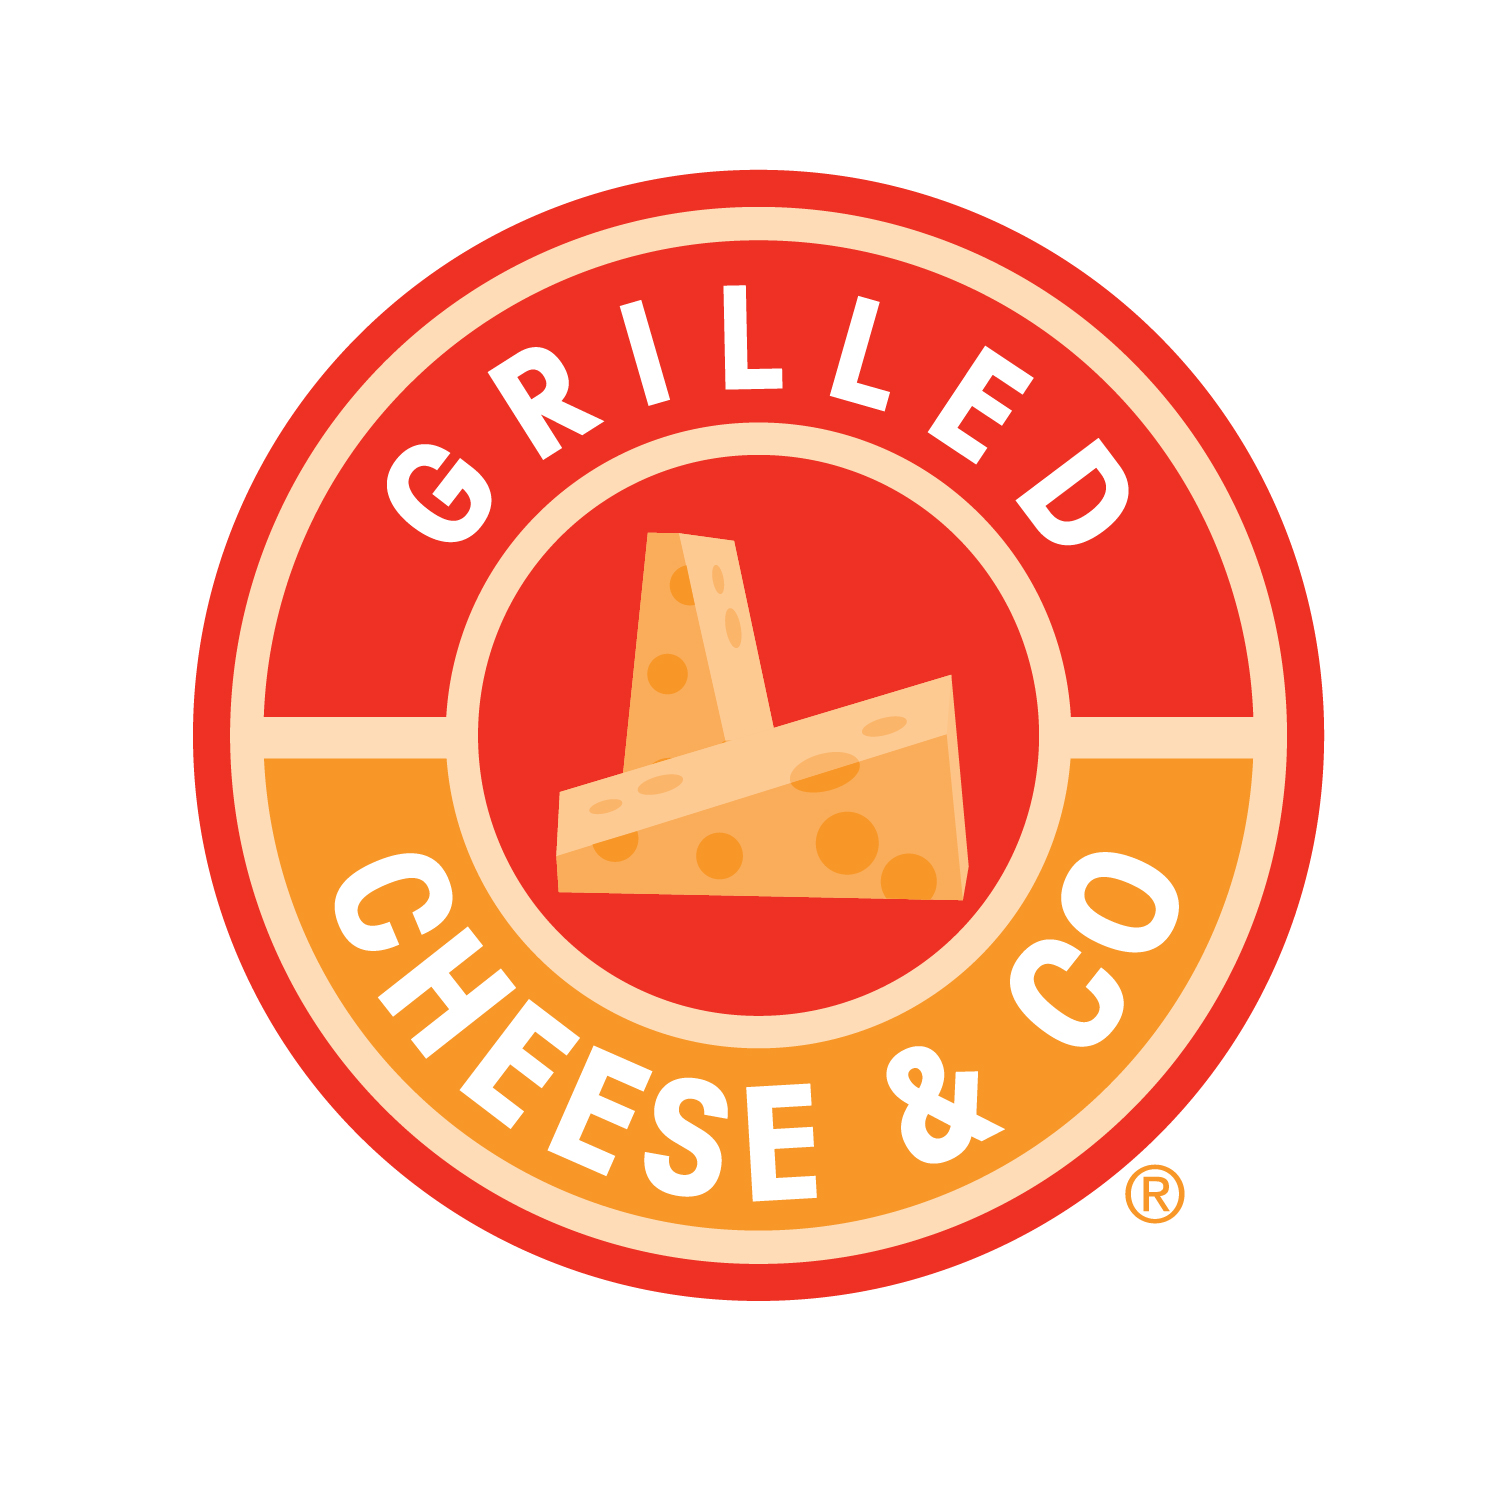 Grilled Cheese Co.